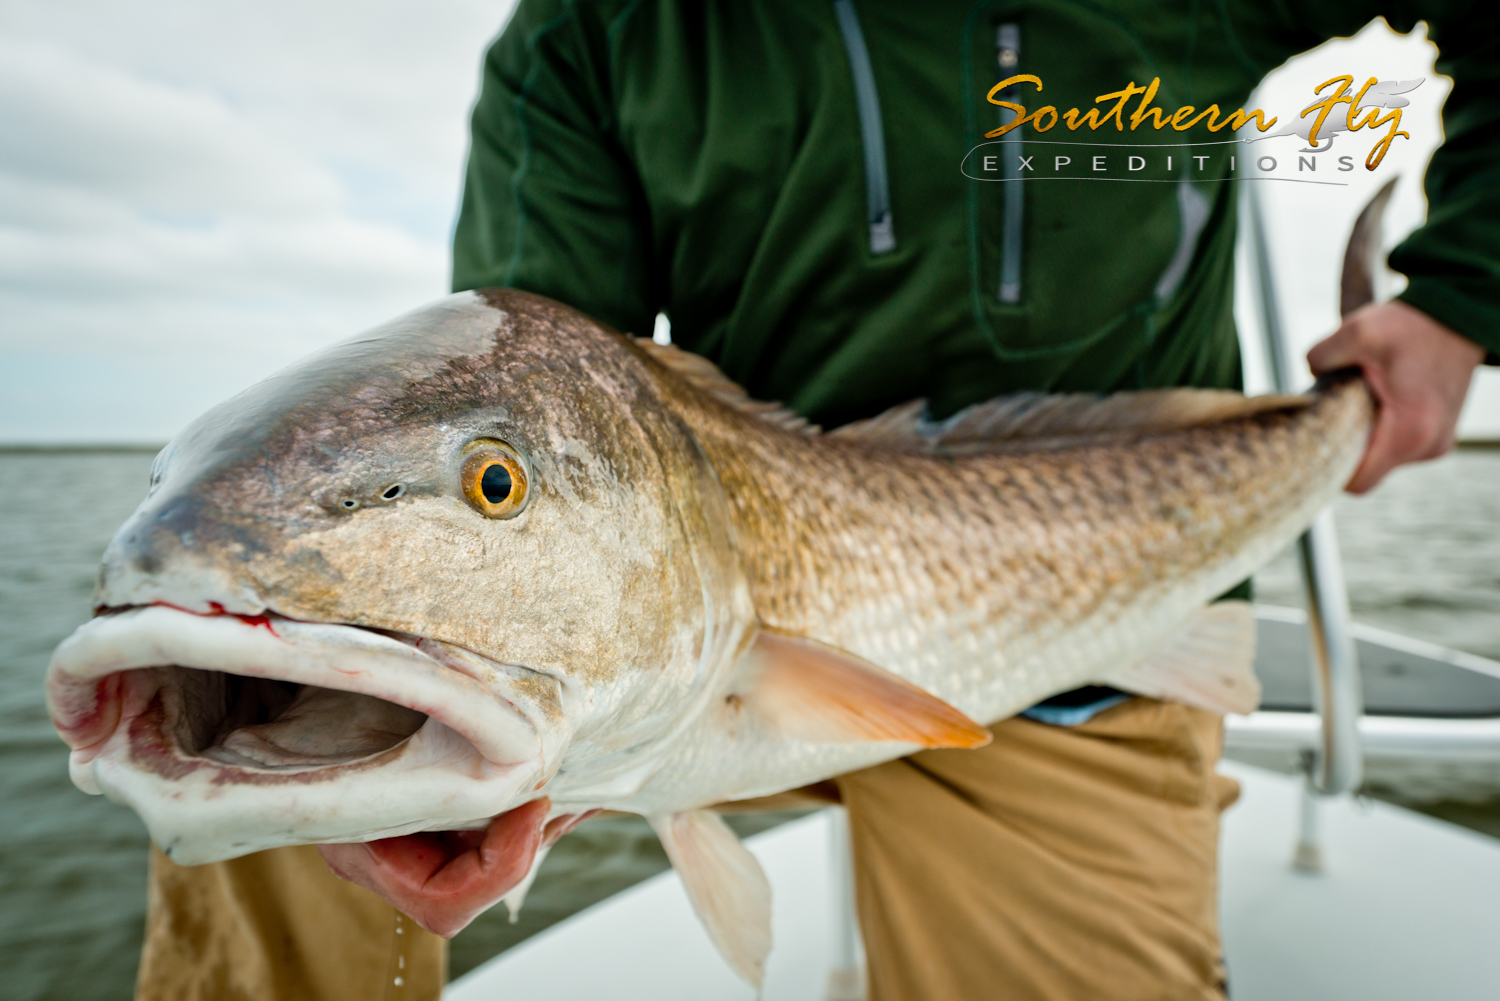 Fly Fishing for Redfish on the Coast of Louisiana with Southern Fly Expeditions